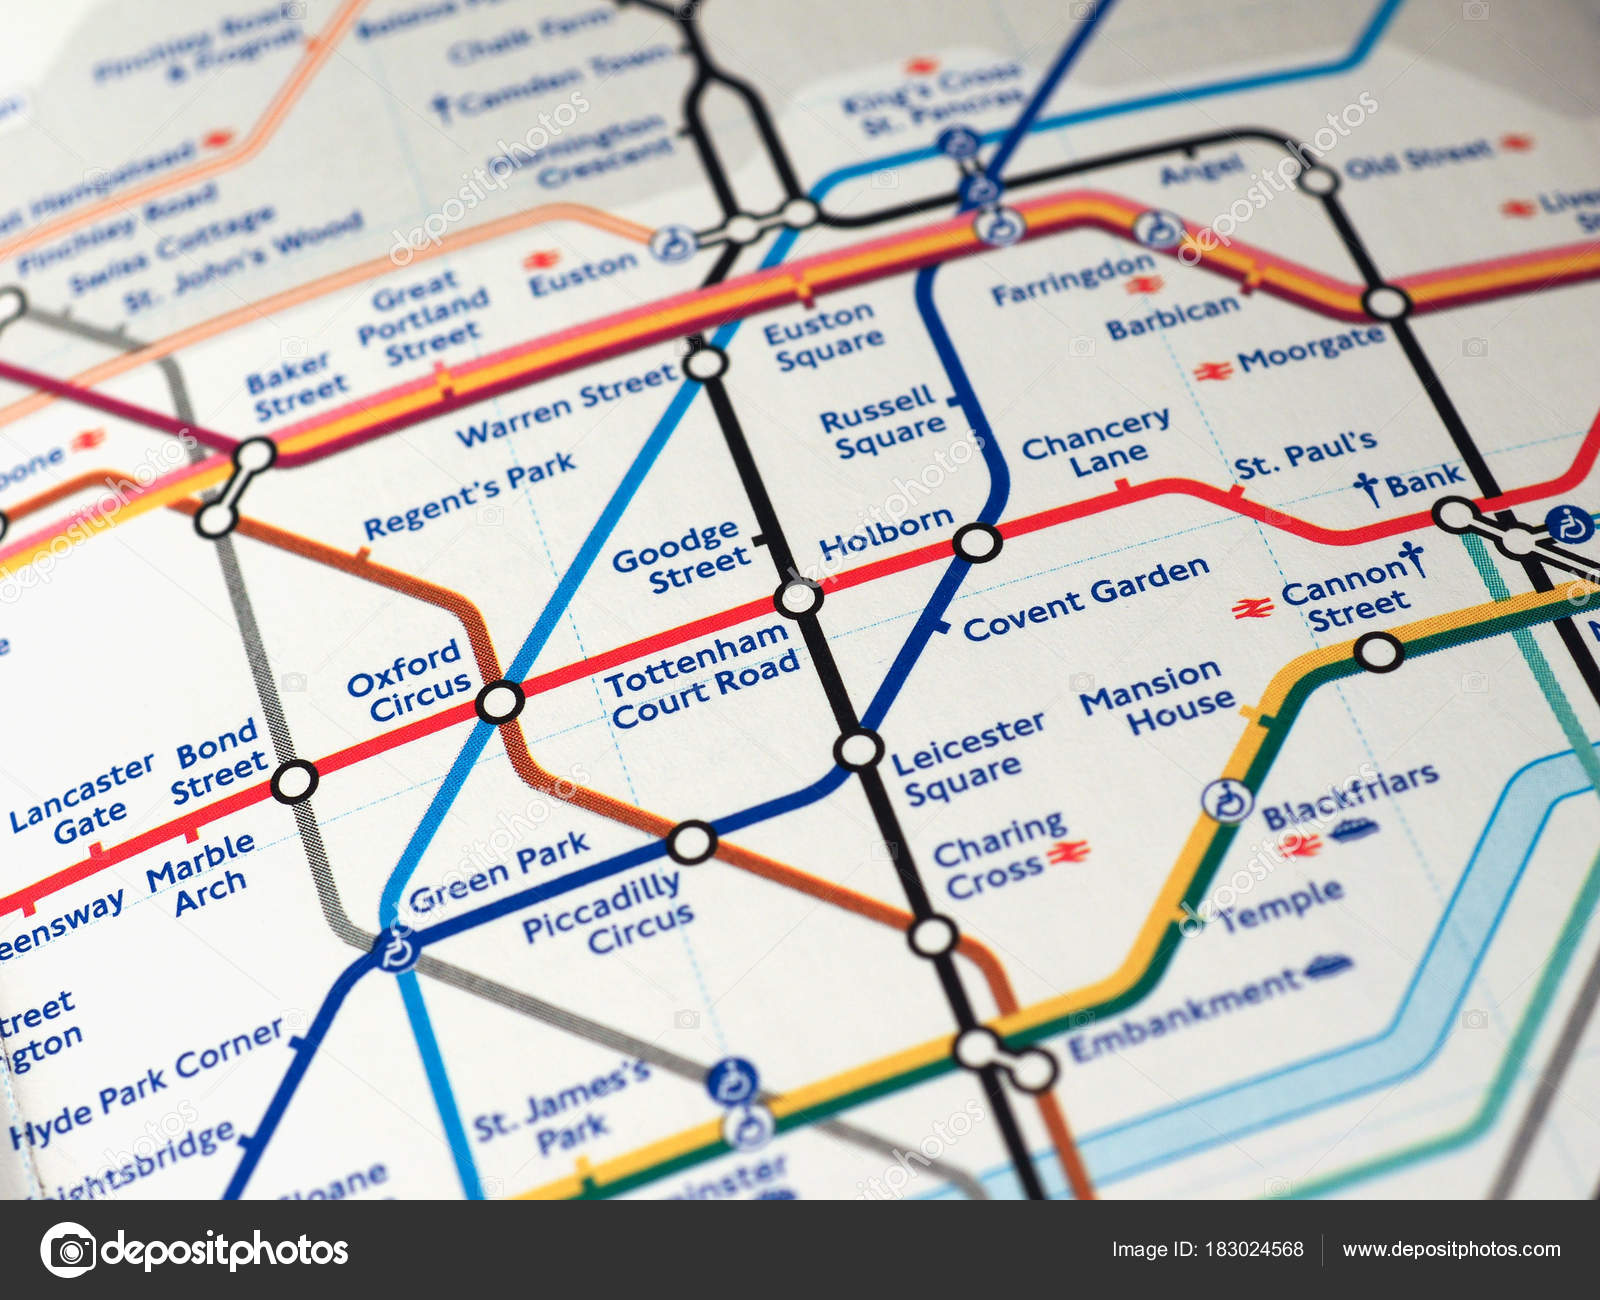 Street Map Of London With Tube Stations.Map Of London Underground Stock Editorial Photo C Claudiodivizia